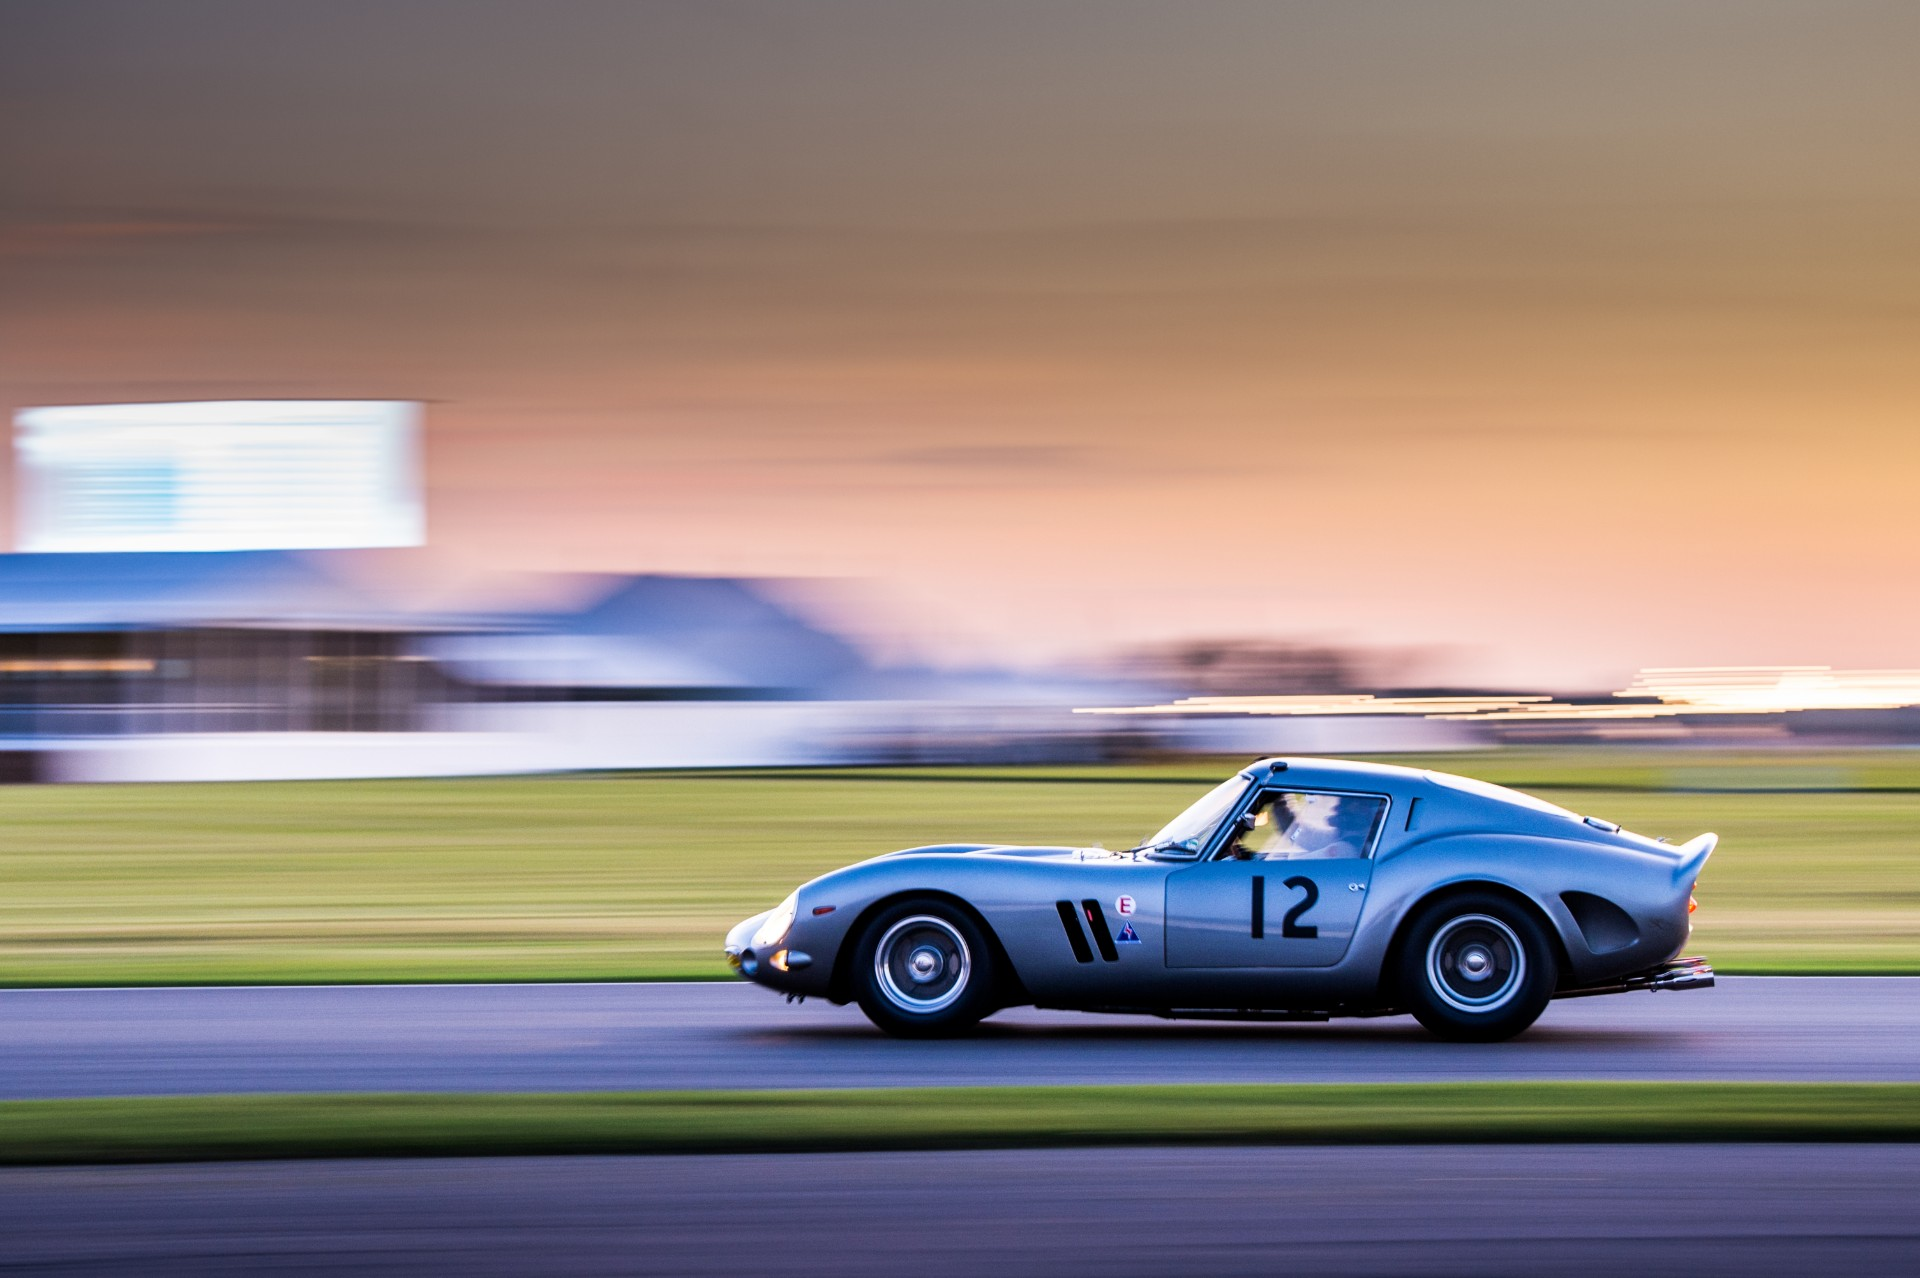 Scenes From Goodwood Revival: The World's Greatest Classic Car Fest